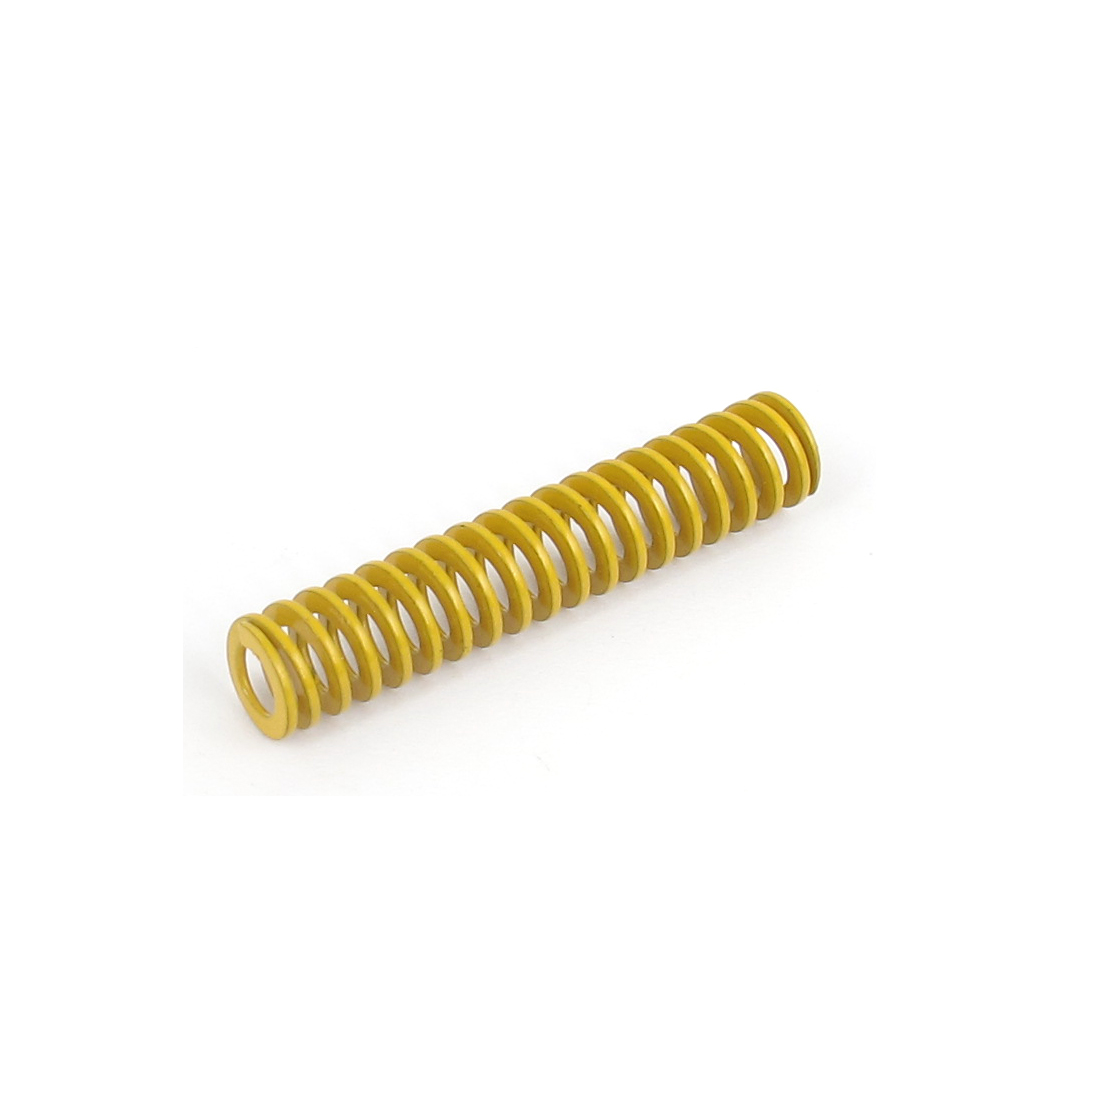 8mm OD 40mm Long Lightest Load Spiral Stamping Compression Die Spring Yellow